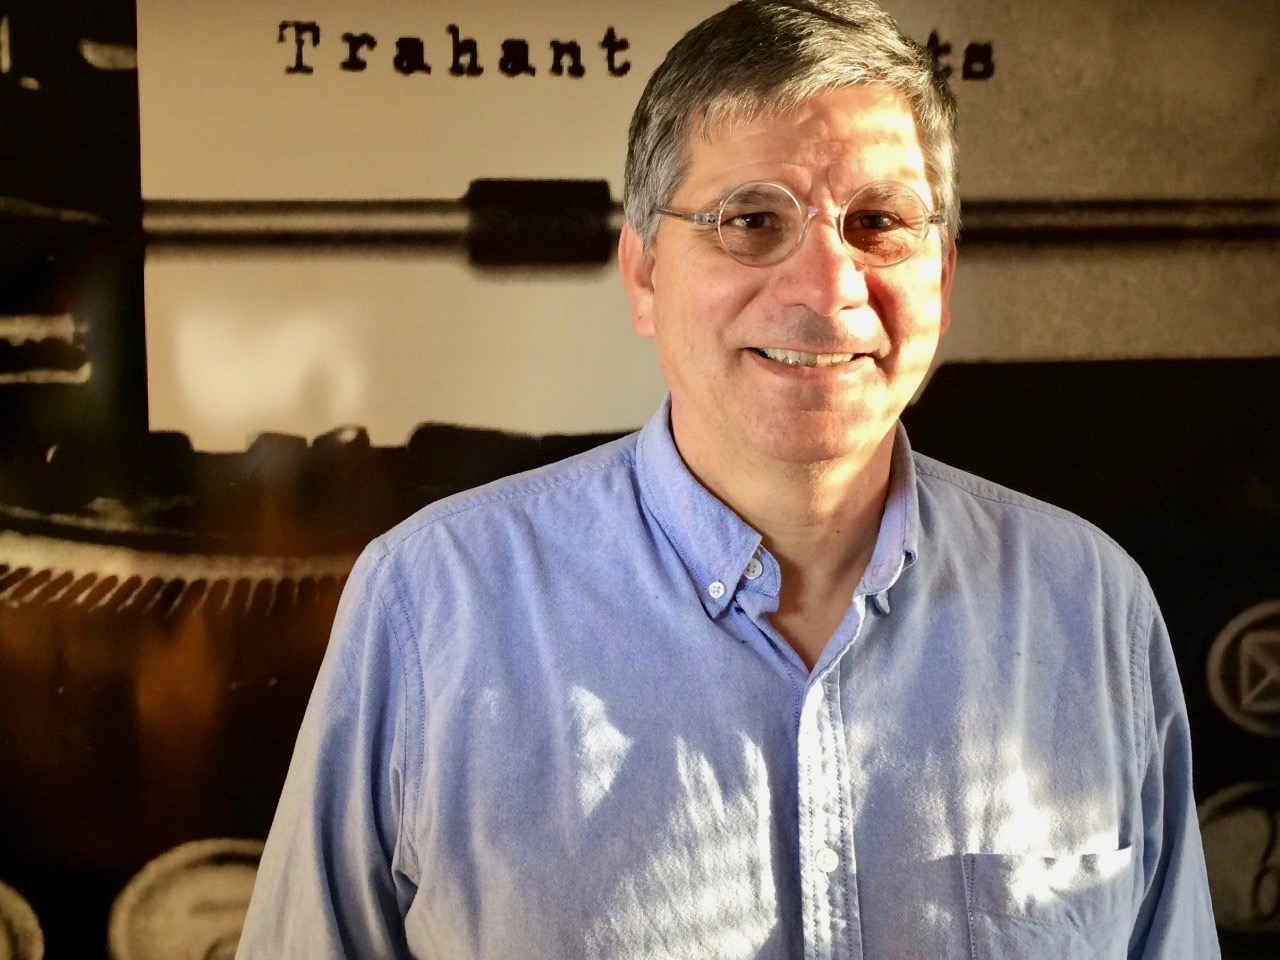 Mark Trahant quits post after university stifles discussion on Dakota Access Pipeline